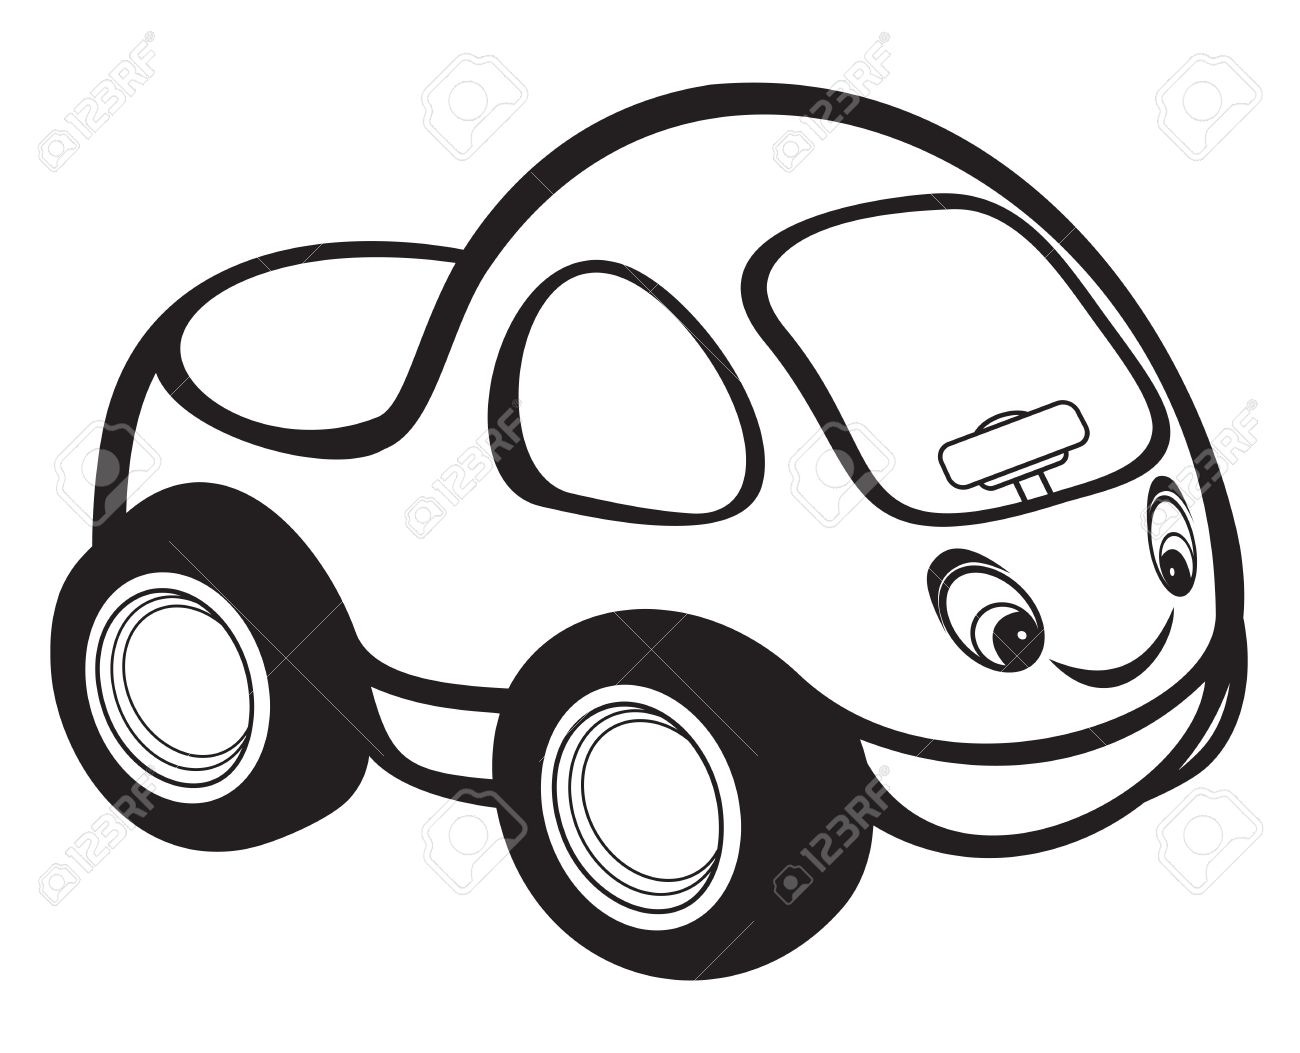 1300x1053 Cute Kids Race Car Black And White Royalty Free Cliparts, Vectors